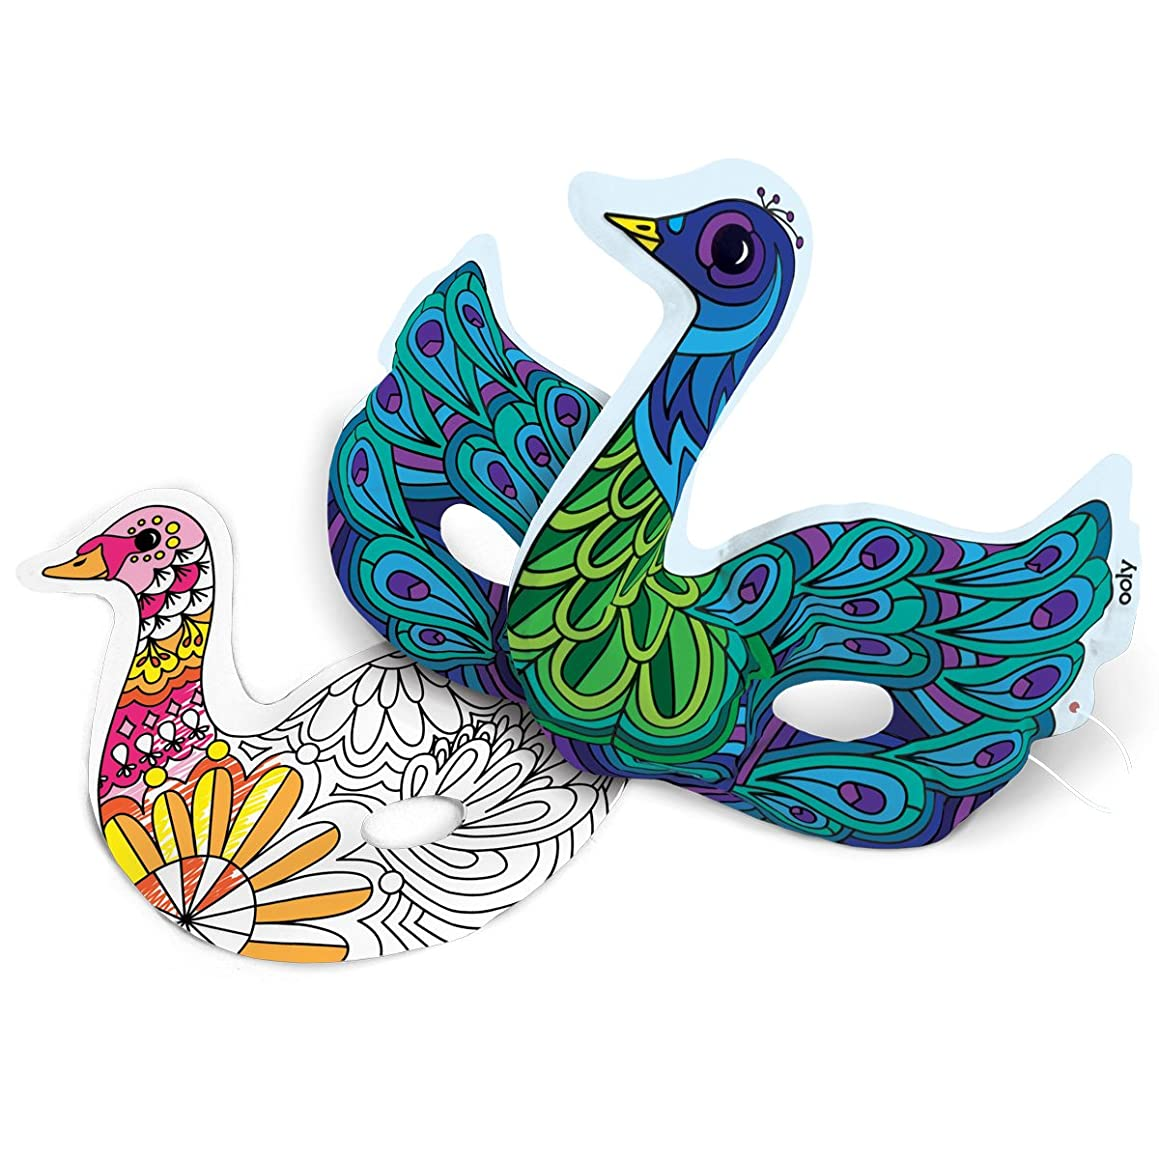 Ooly 3D Colorables Inflatable Coloring Paper Toys - DIY Beautiful Birds Masks - Set of 2 - For Ages 4+